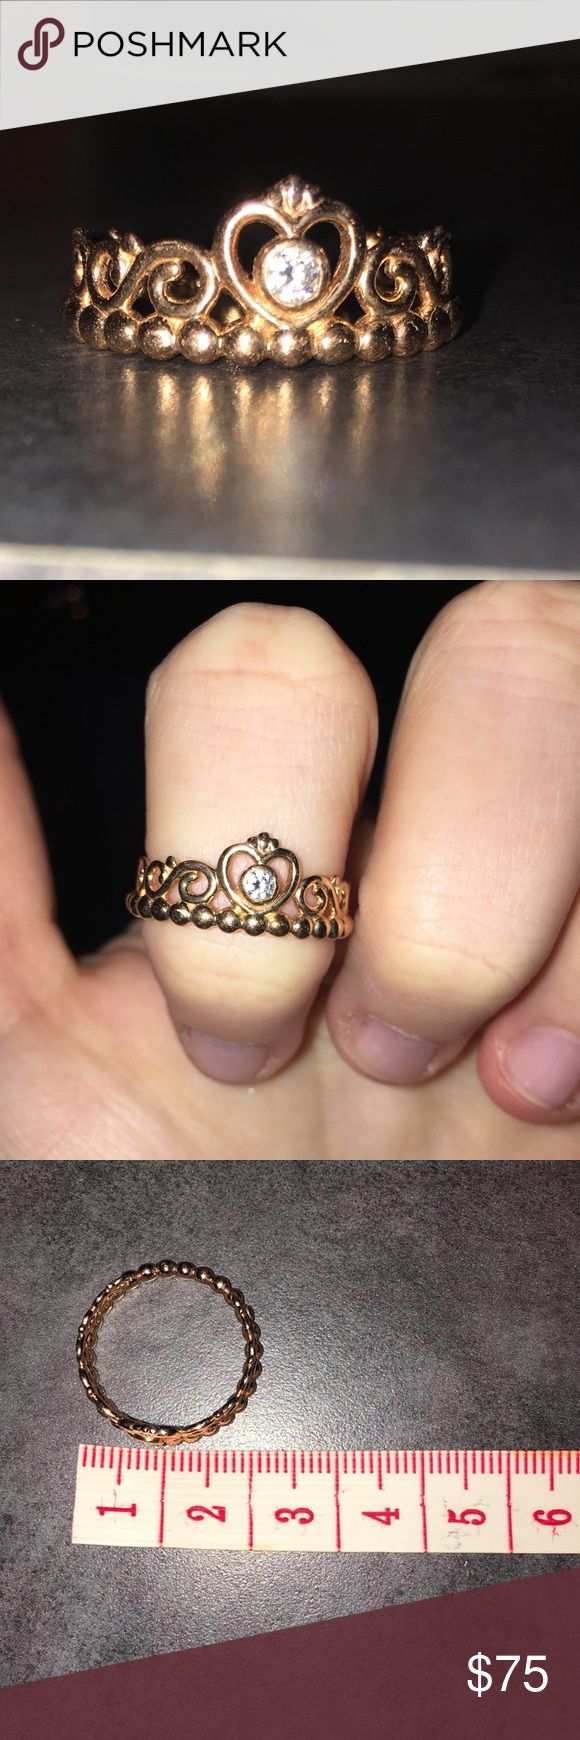 Princess Ring Pandora Rose Gold Princess ring! Great condition! Amazing gift for your best friend or daughter or for yourself!!! Price is negotiable so make an offer! Pandora Jewelry Rings